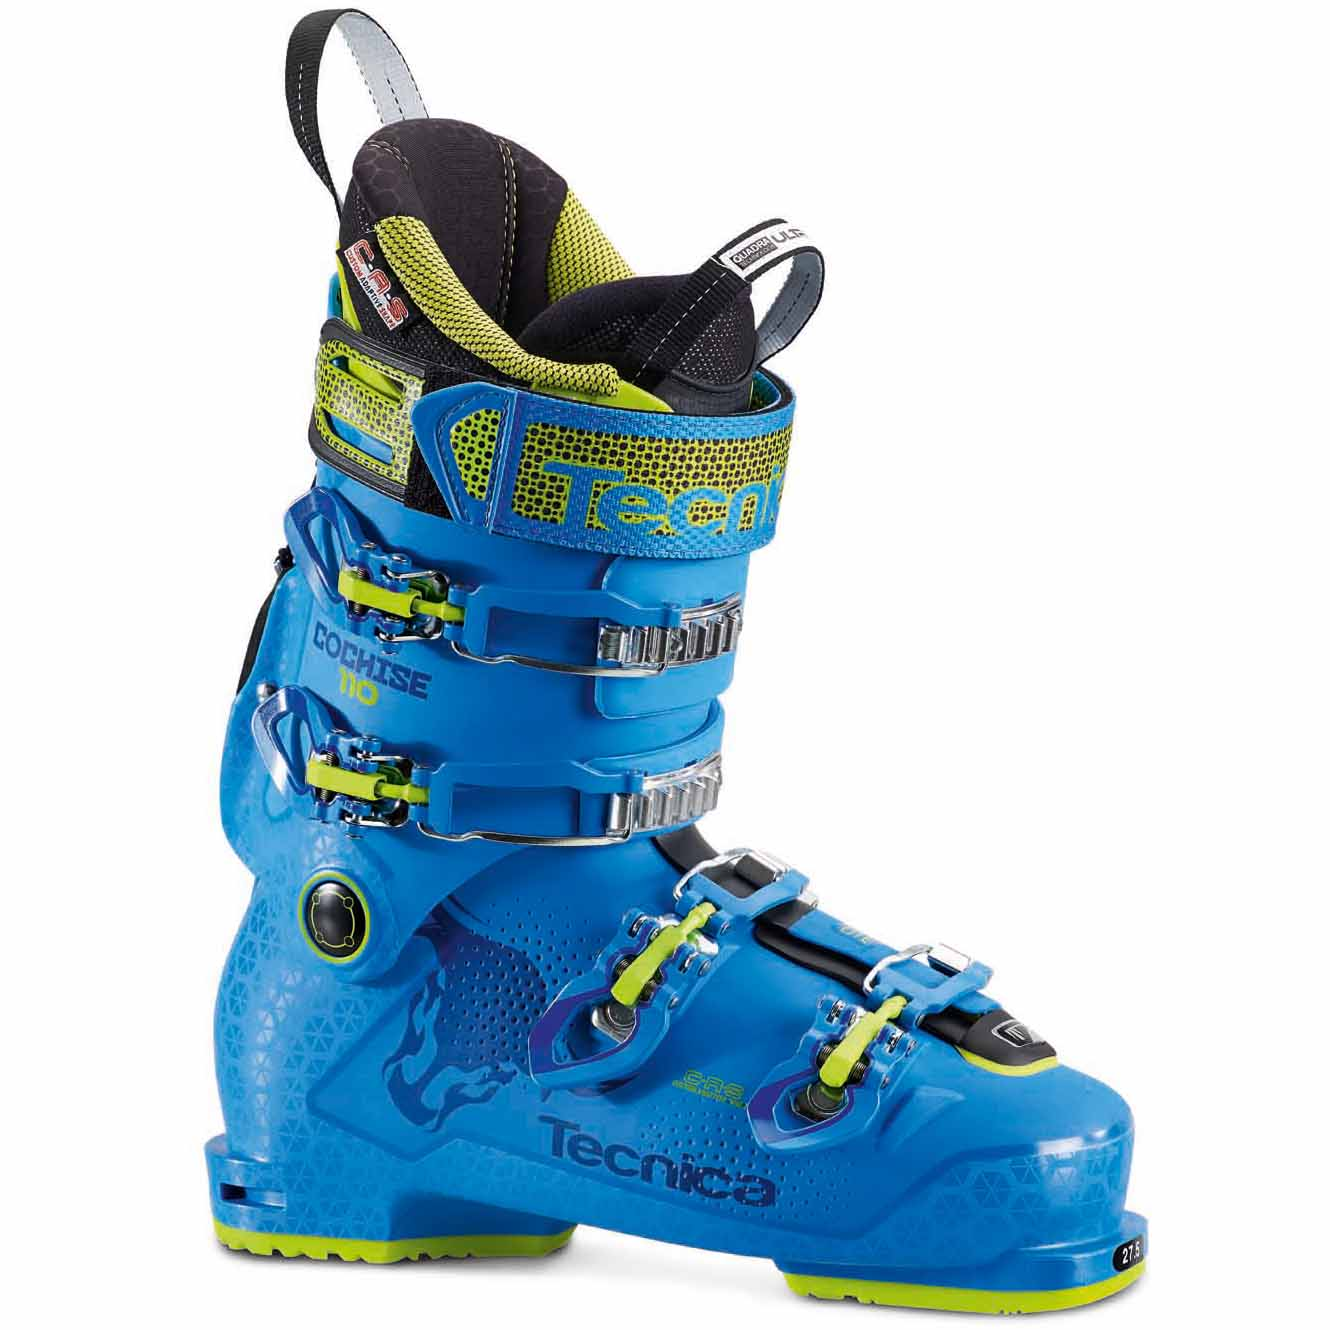 60a477744a 2017-18 Tecnica Cochise 110 Mens Ski Boot - Anything Technical